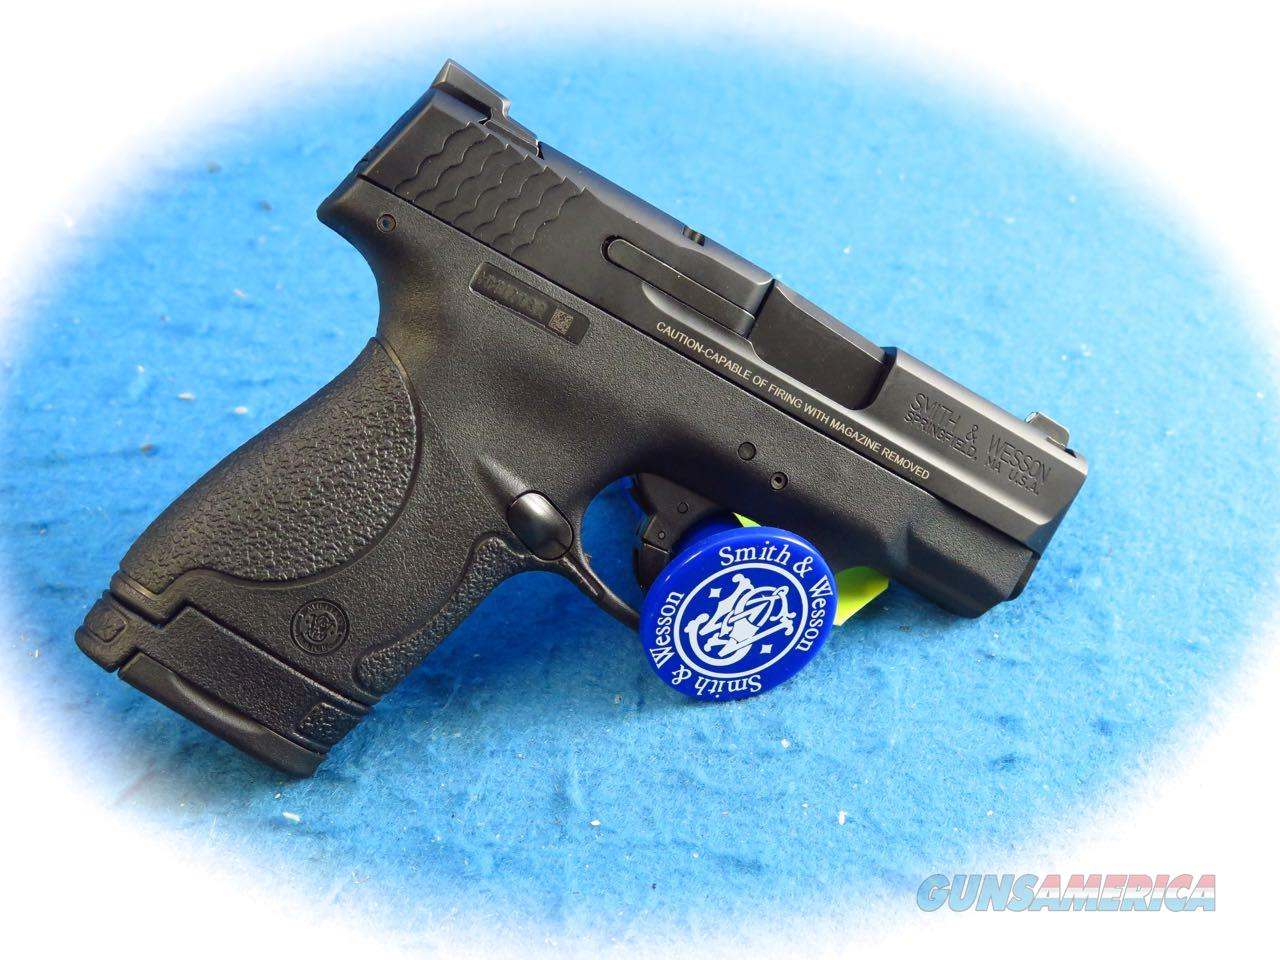 Smith & Wesson M&P Shield 9mm Pistol W/ Night Sights Model 10086 **New**  Guns > Pistols > Smith & Wesson Pistols - Autos > Shield